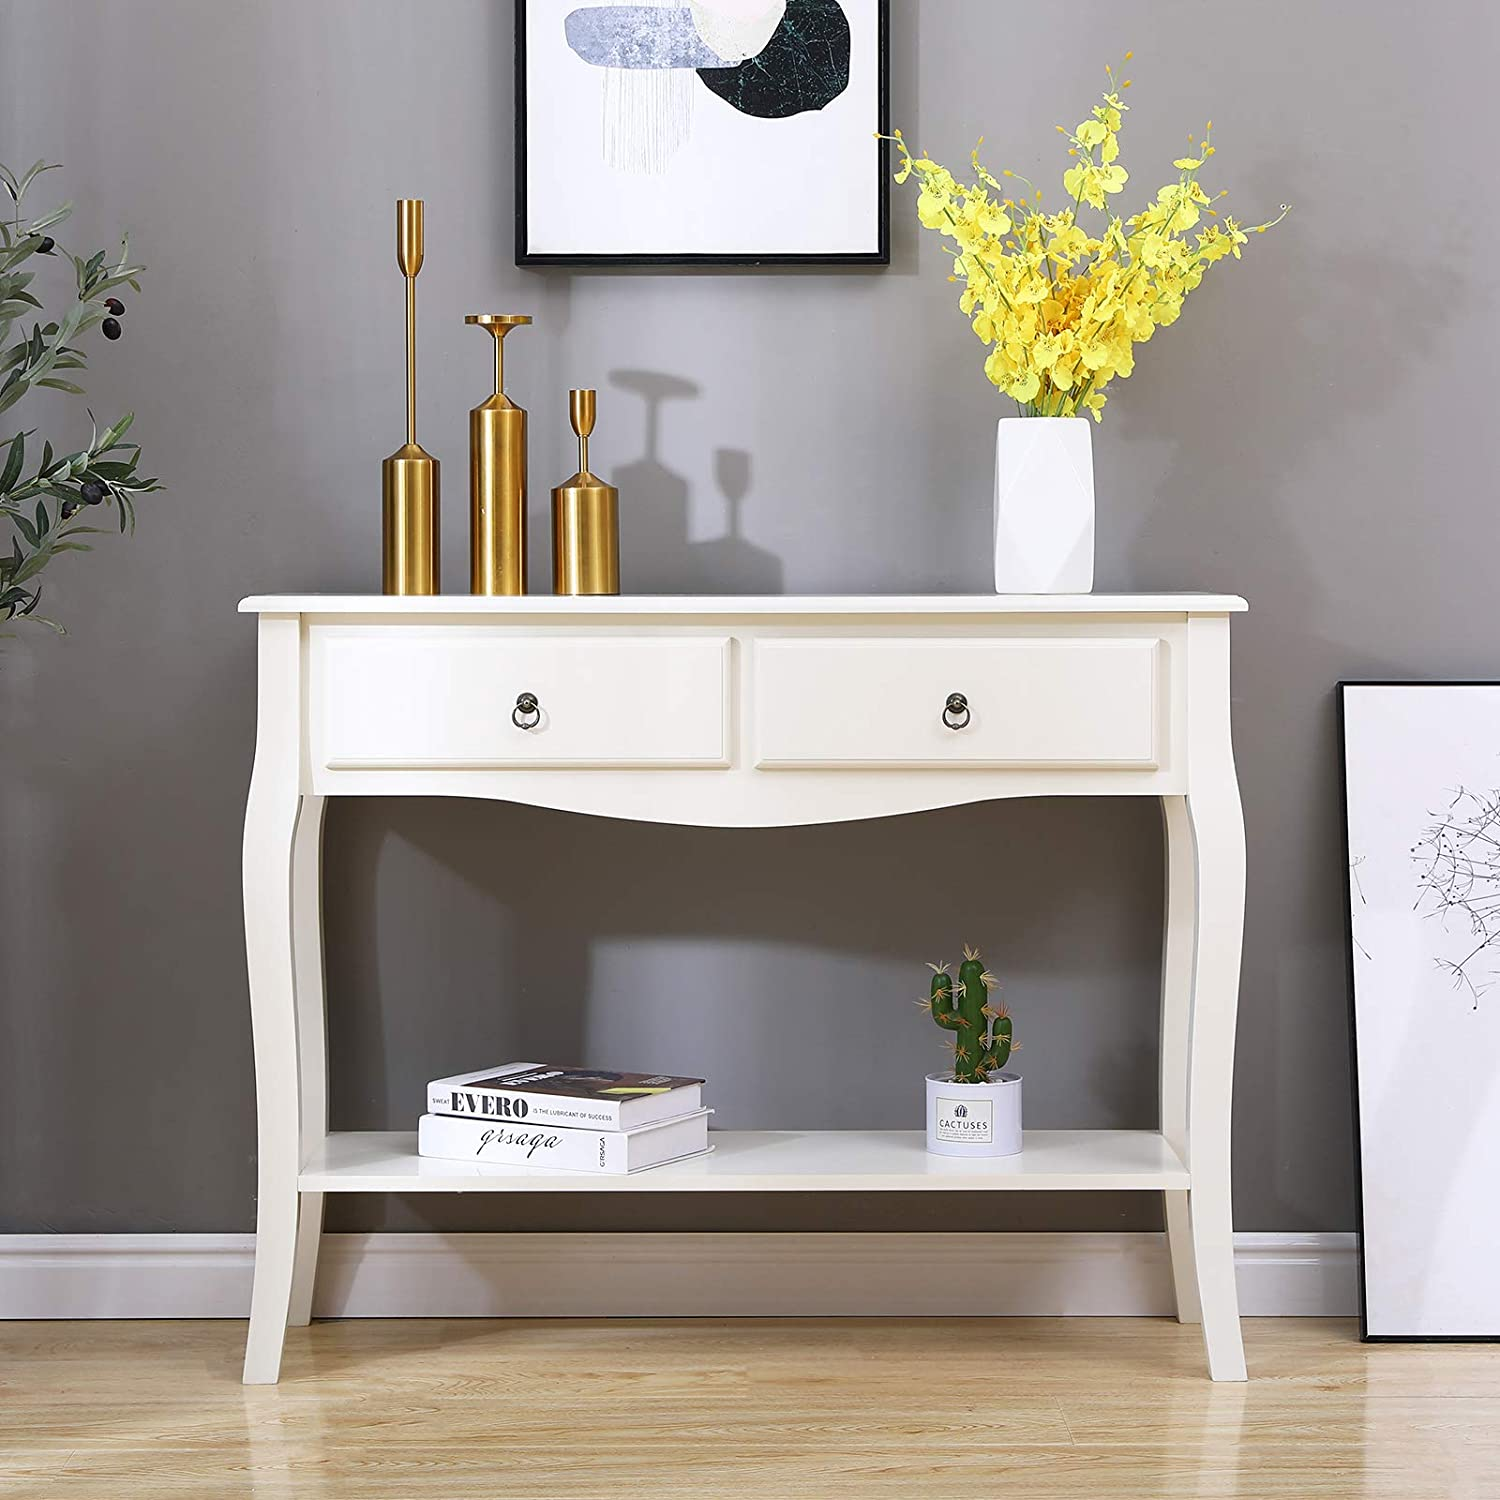 DlandHome Console Table with Drawers and Storage Shelf Hall Rack Entry Hall Table Living Room Table Sofa Table for Living Room /& Entryway DCA-BSB-011